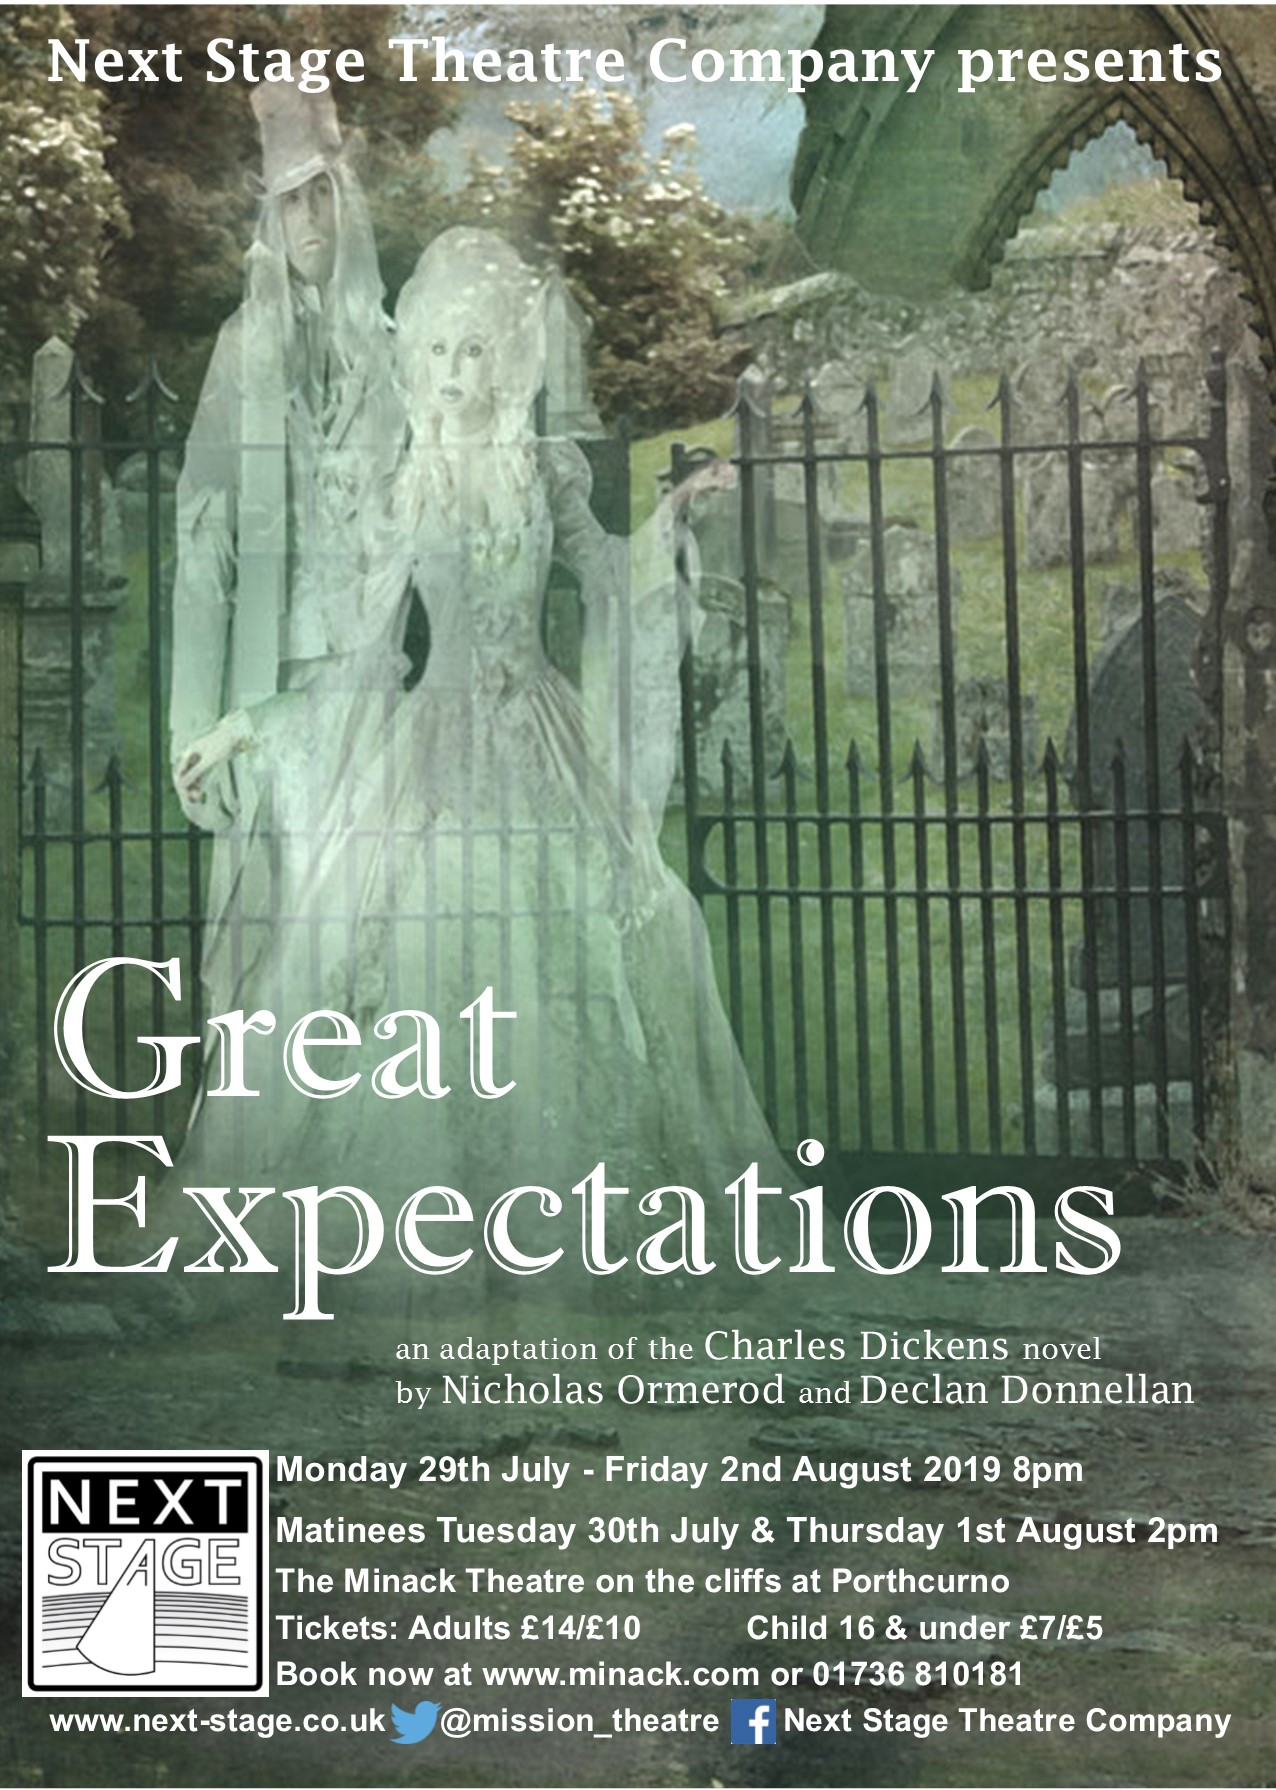 Great Expectations Minack Poster.jpg